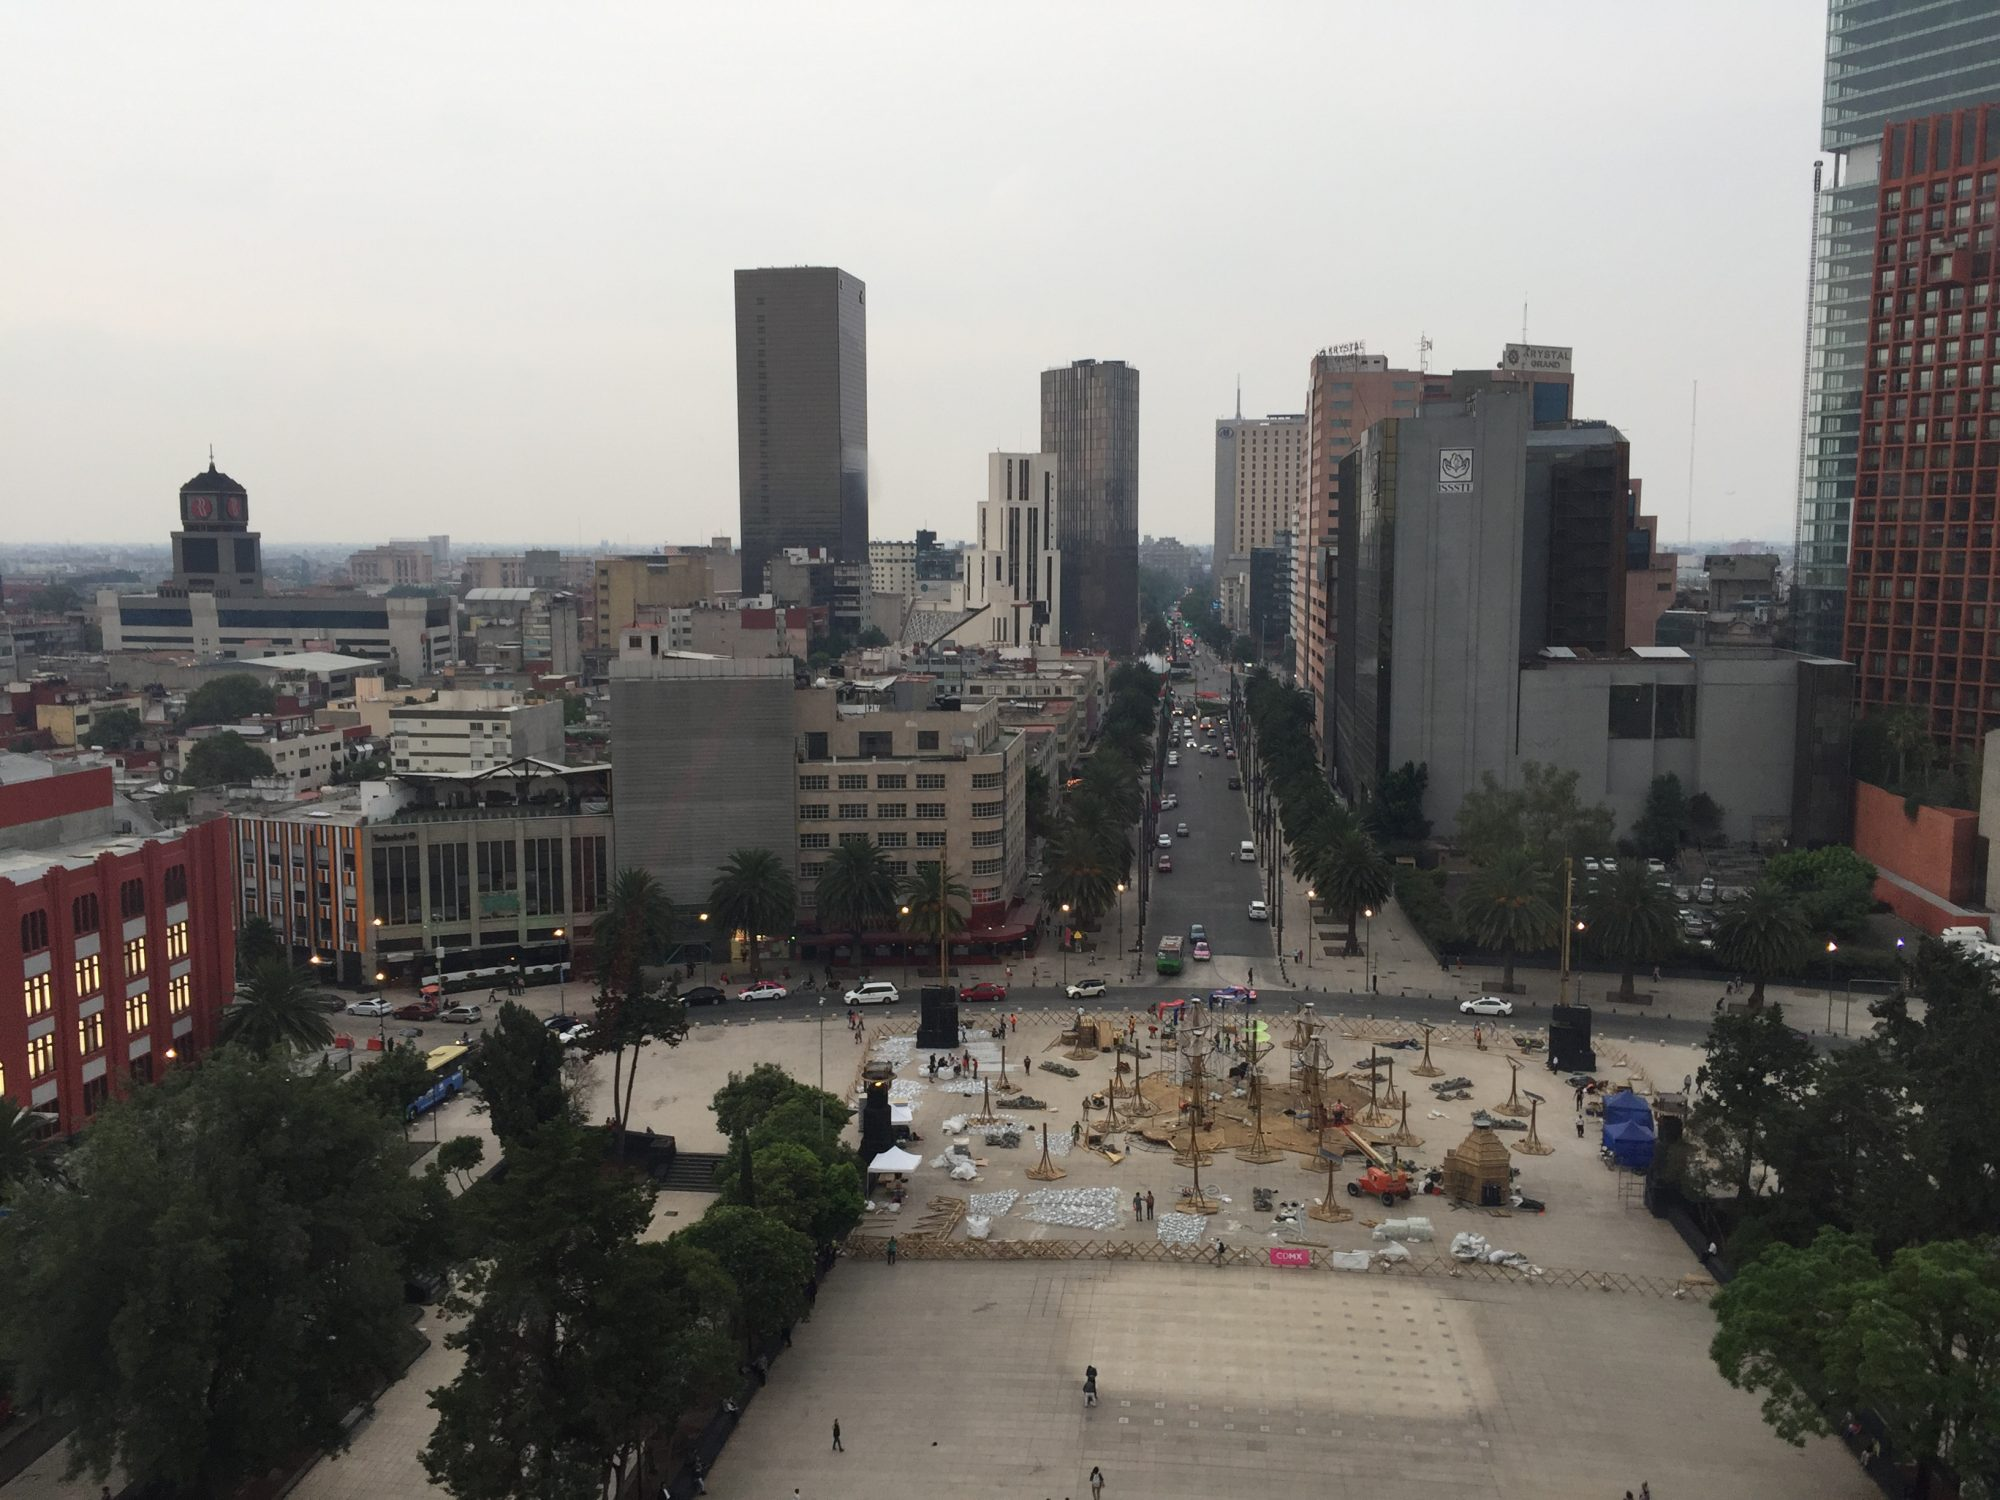 Day 82 Continued – Arriving in Mexico City